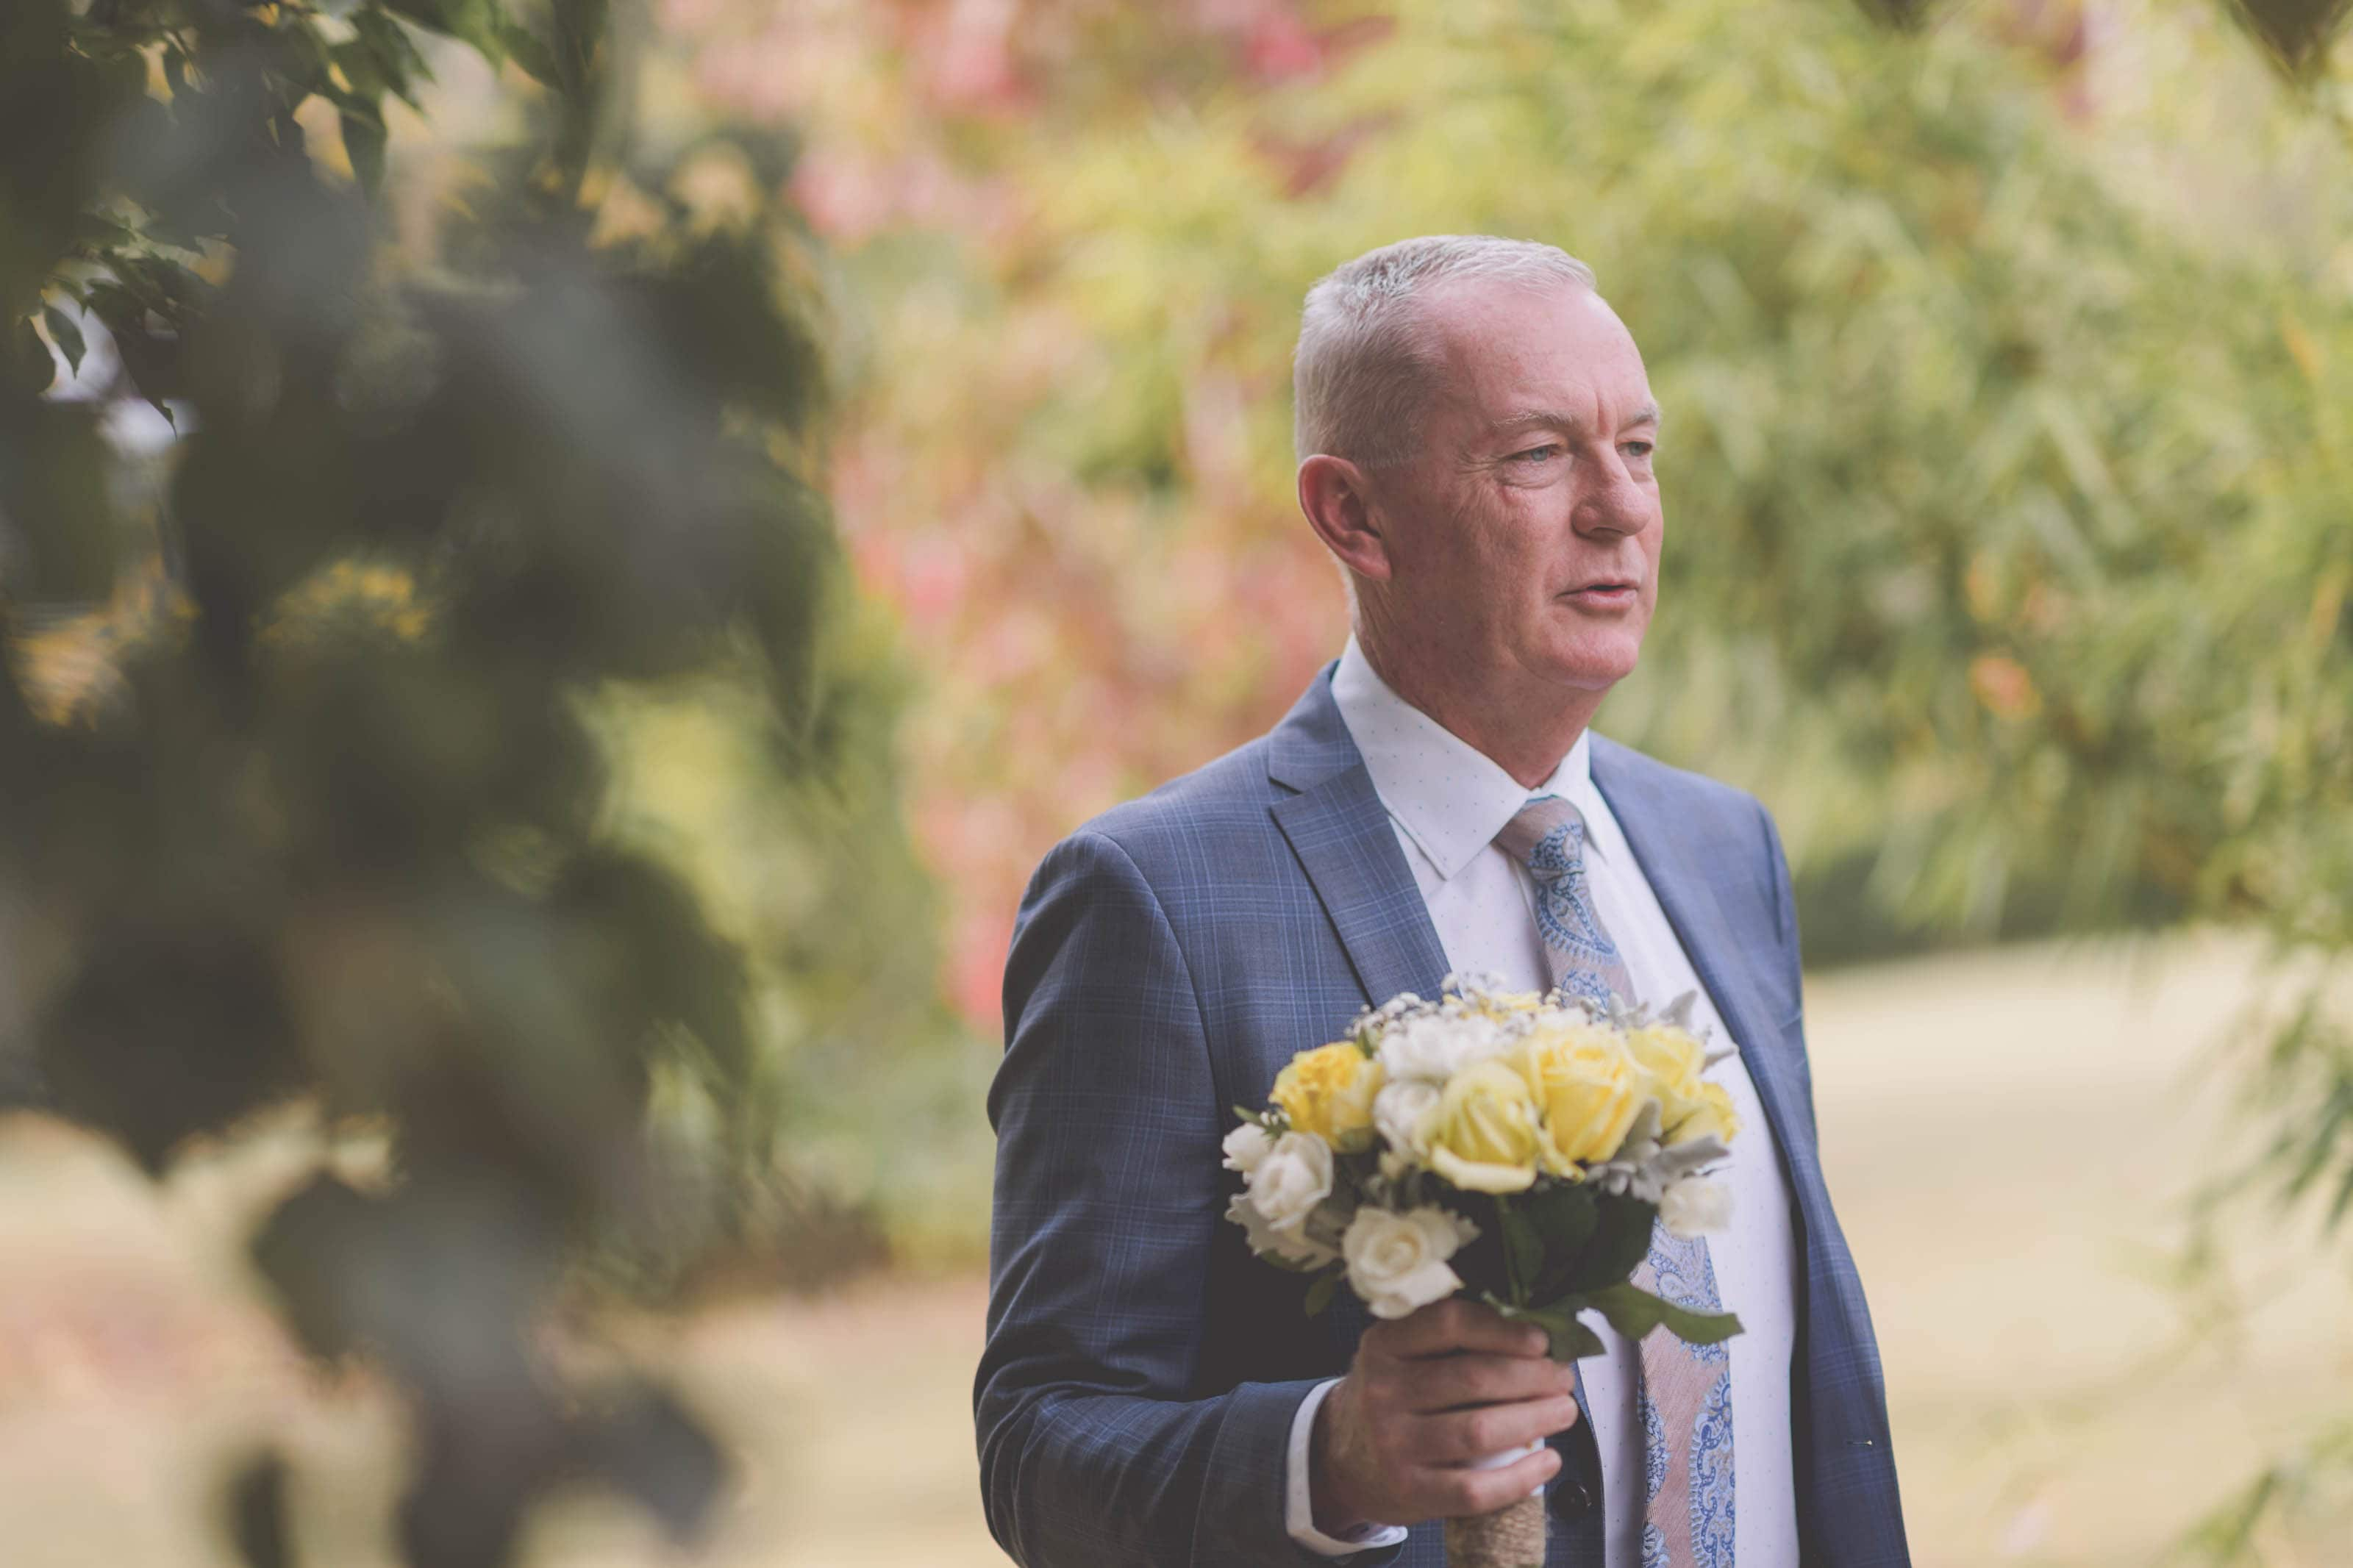 Wedding Photography Melbourne by Pause The Moment - Bride's dad holds her flowers before her Melbourne wedding - Paringa Estate Wedding Photographer